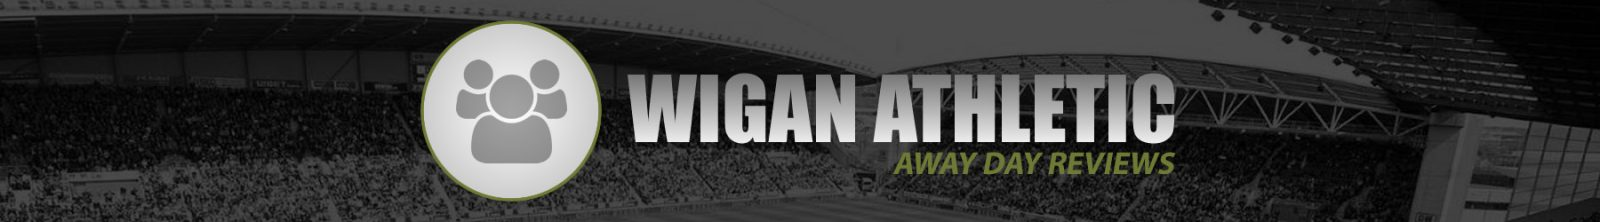 Review Wigan Athletic